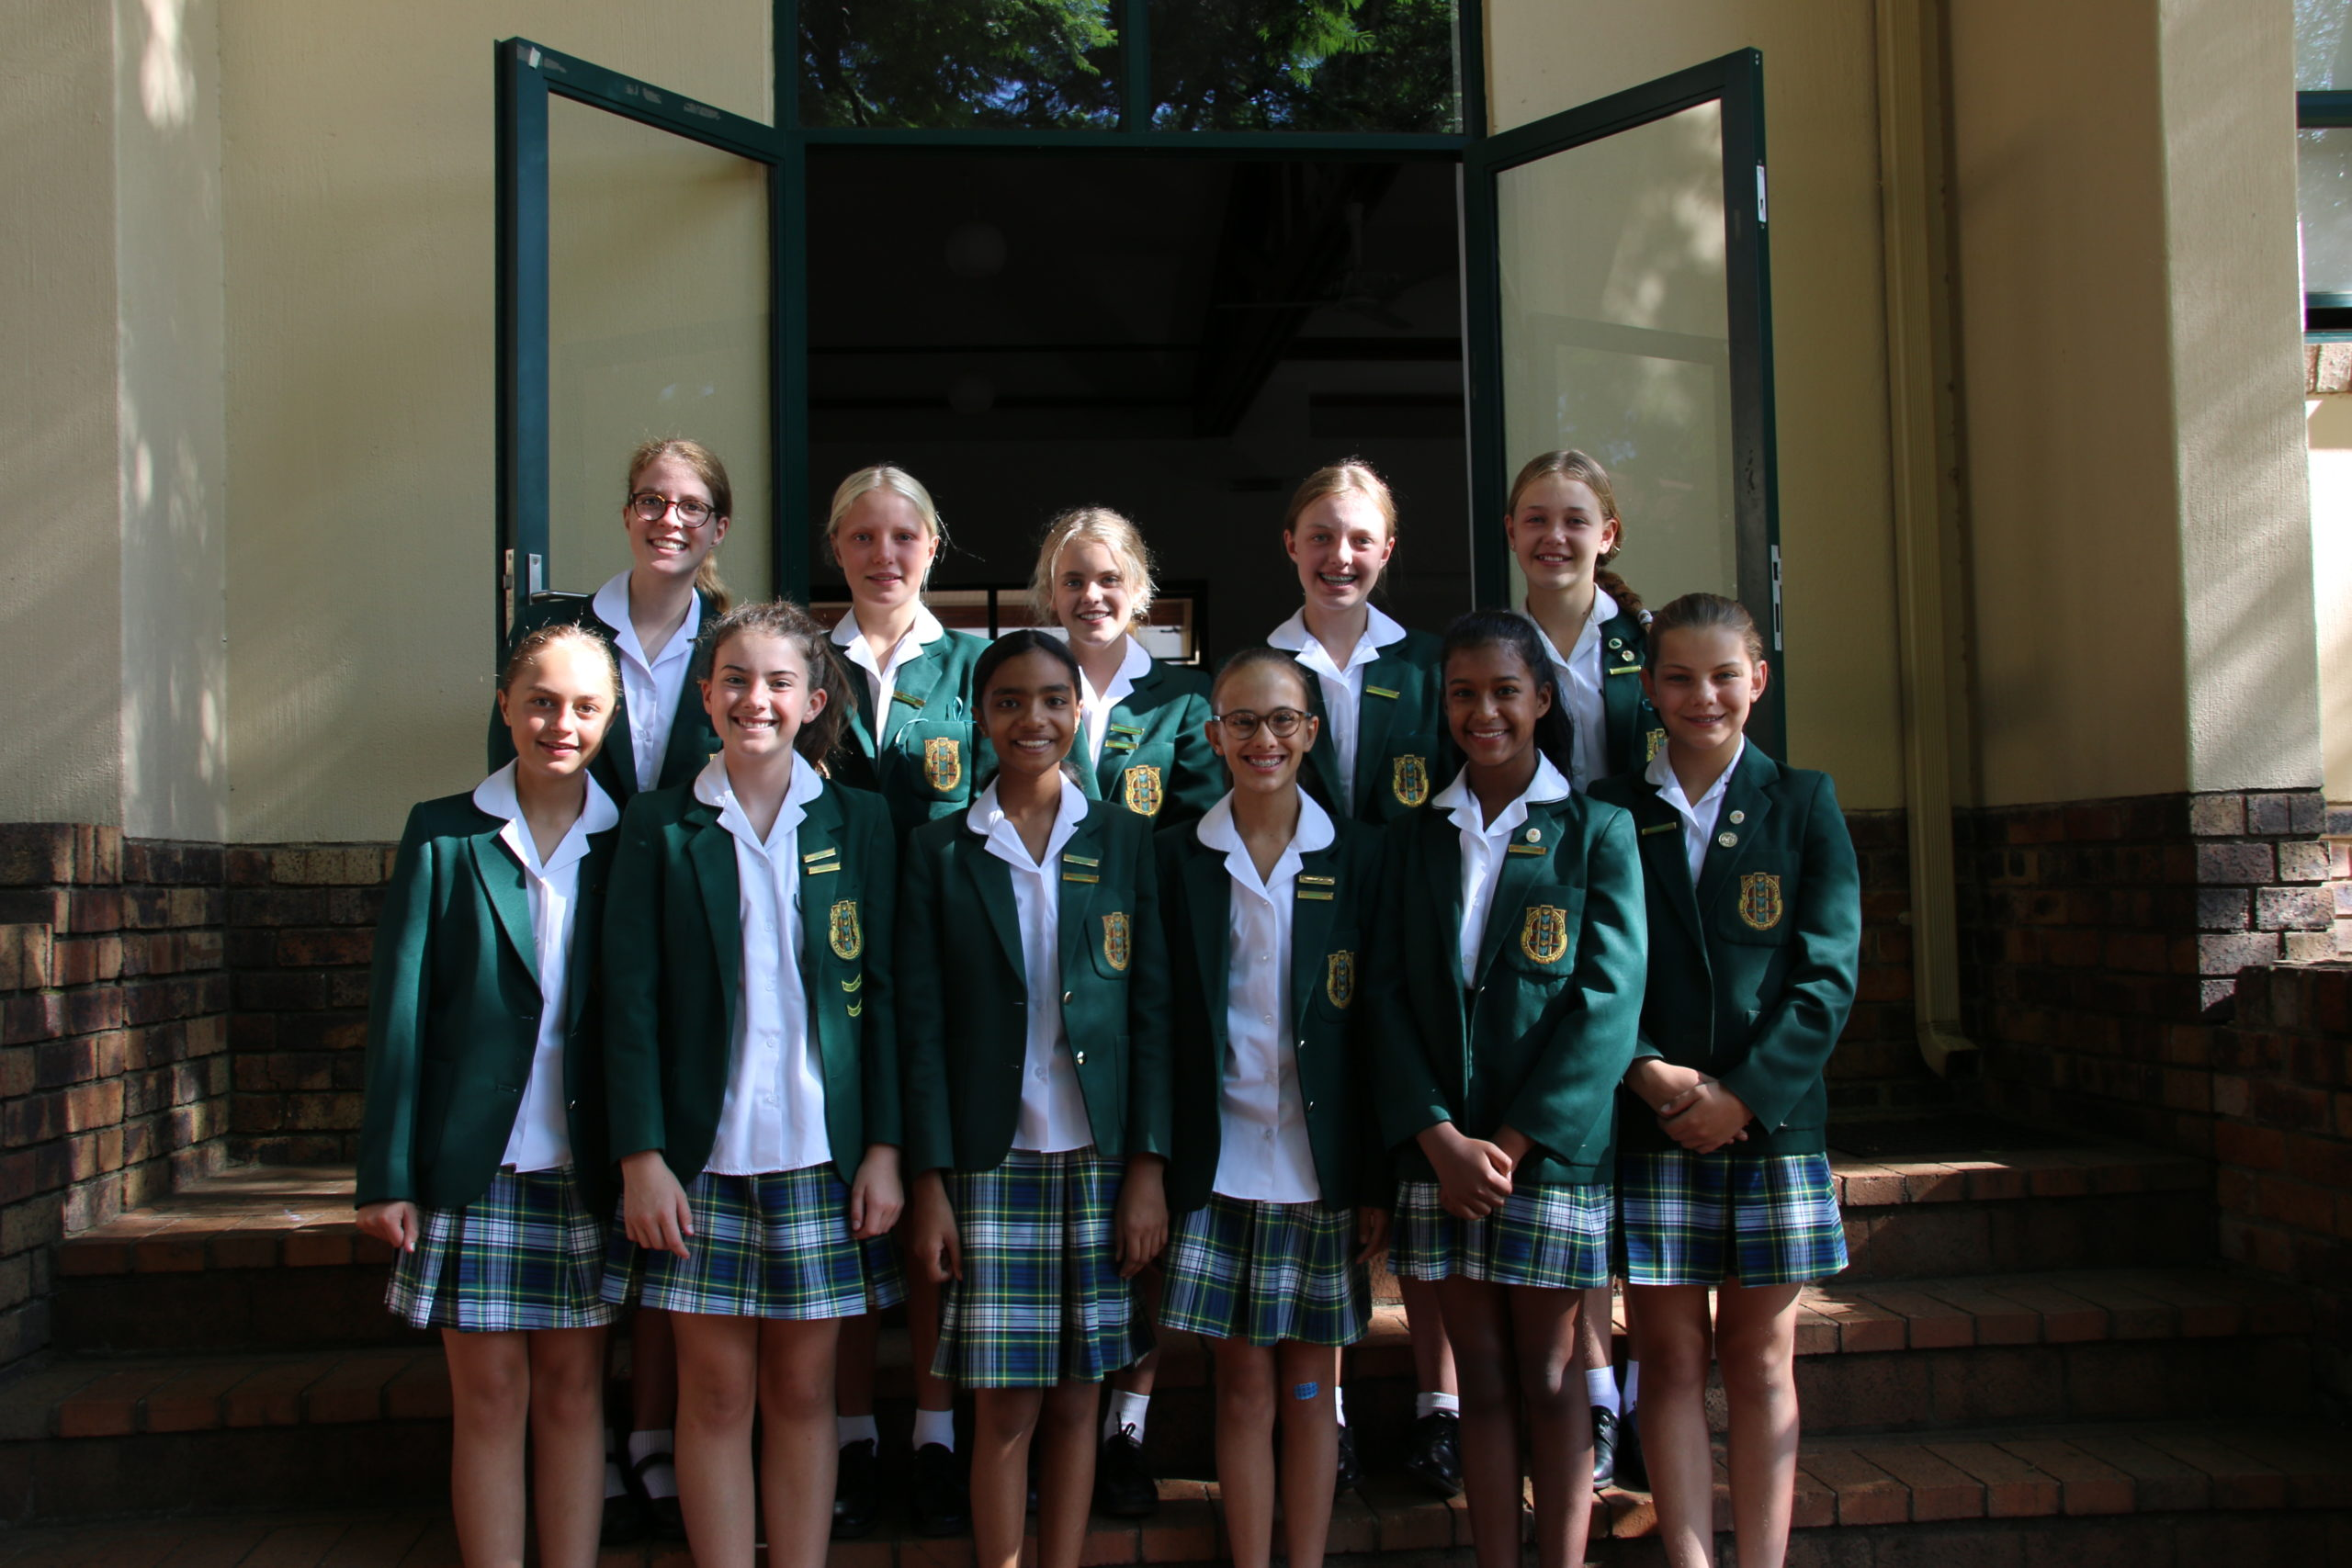 SERVICE COMMITTEE scaled Kingsmead College